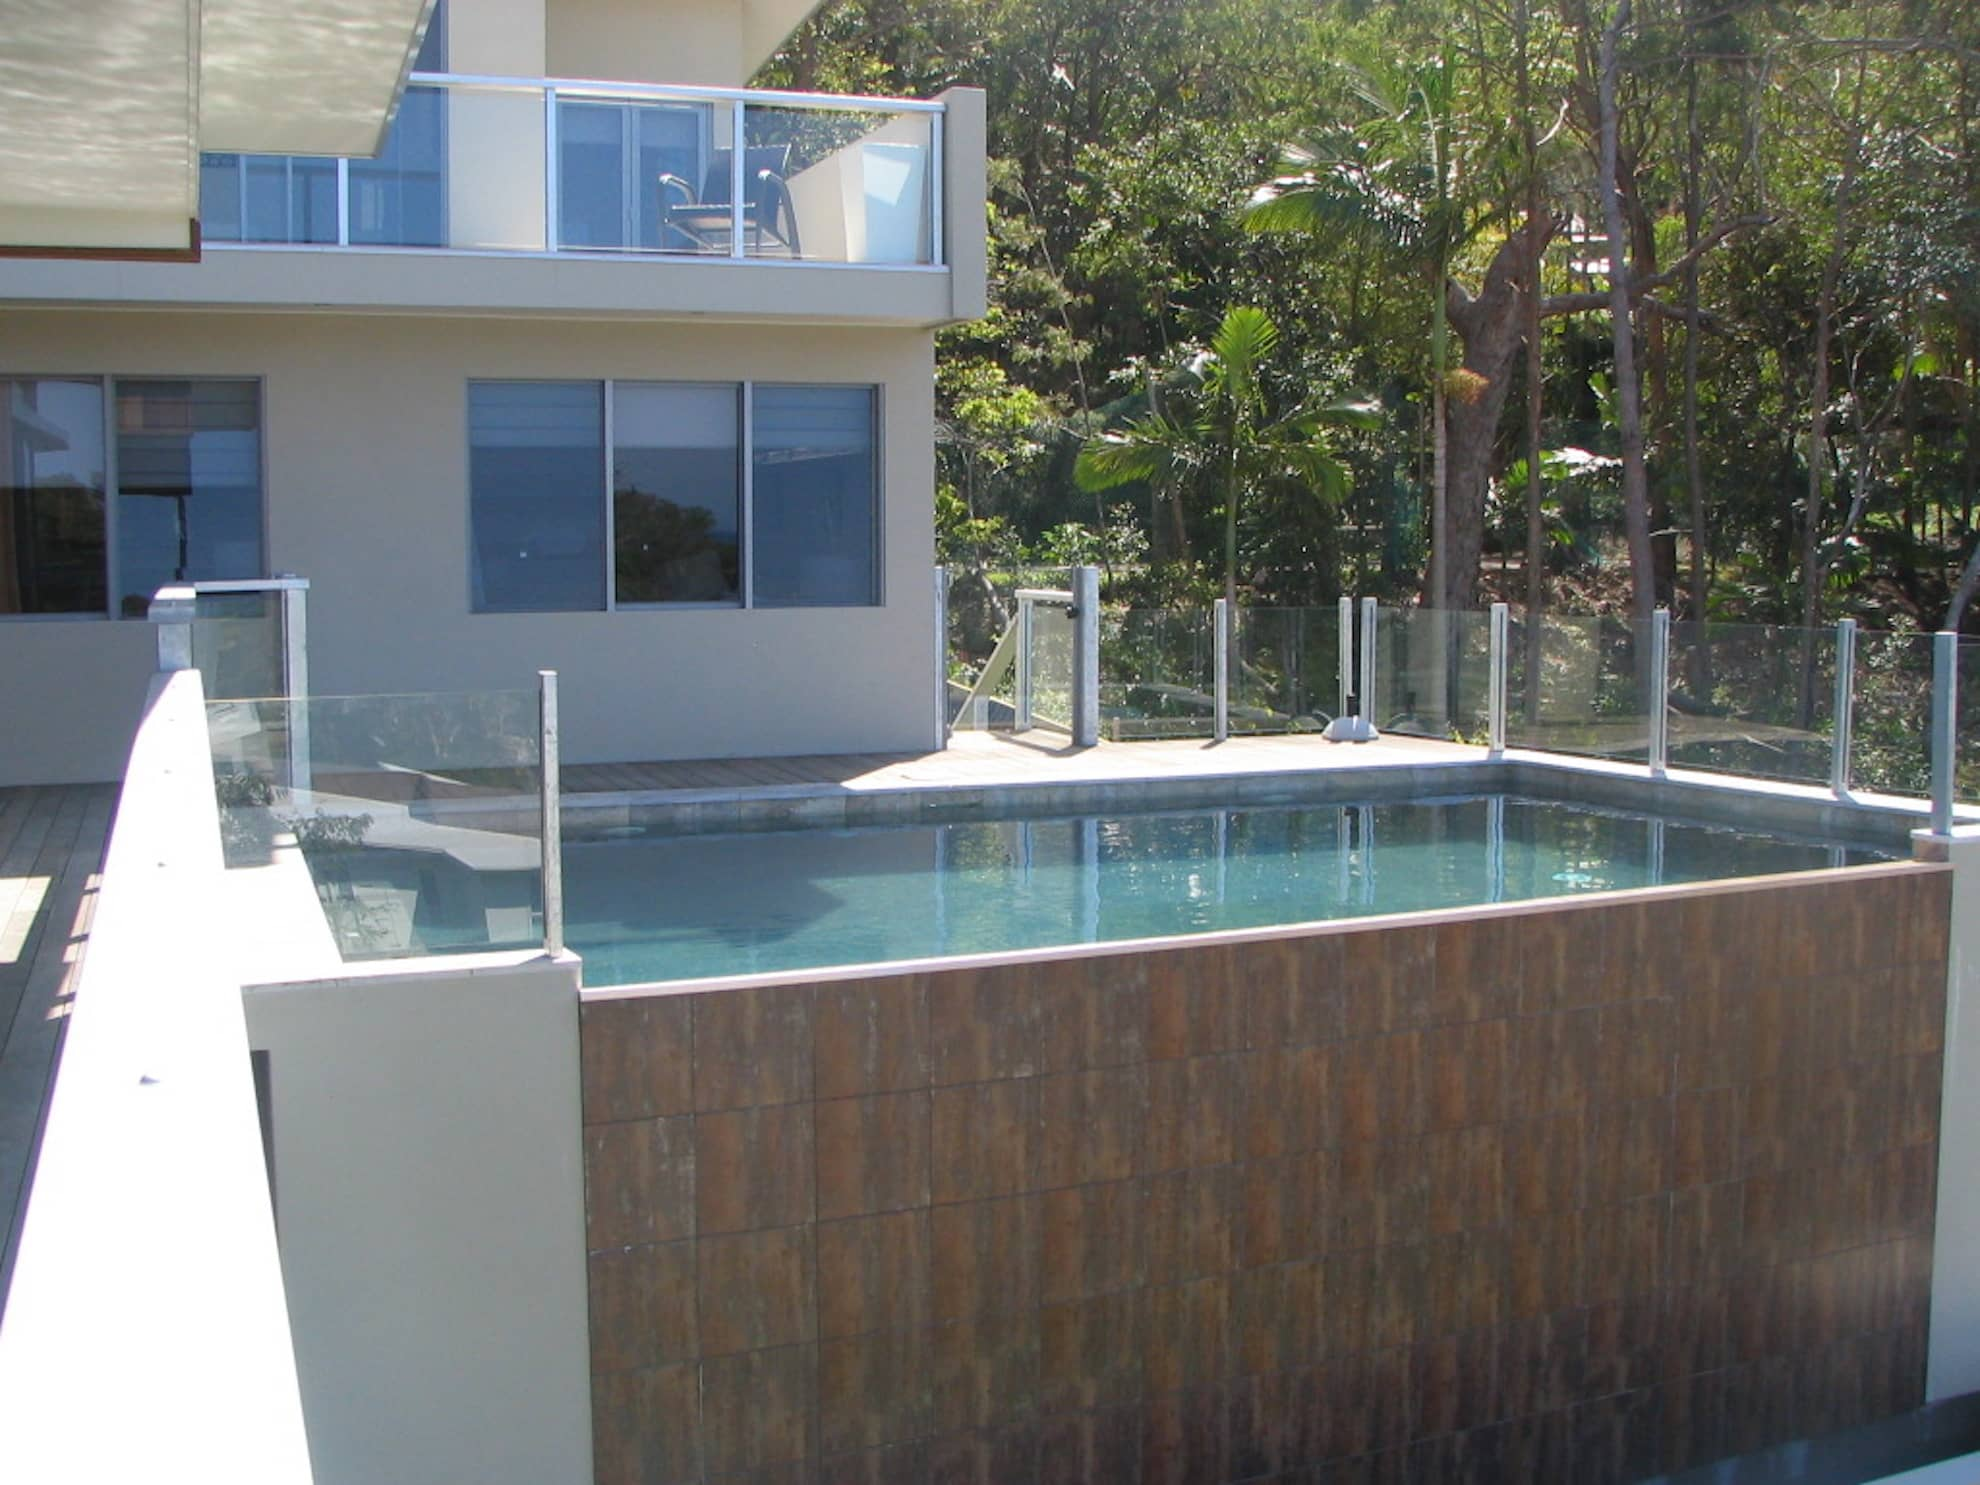 Birdhaven Close project by mdesign, a building design practice that operates on the Sunshine Coast.